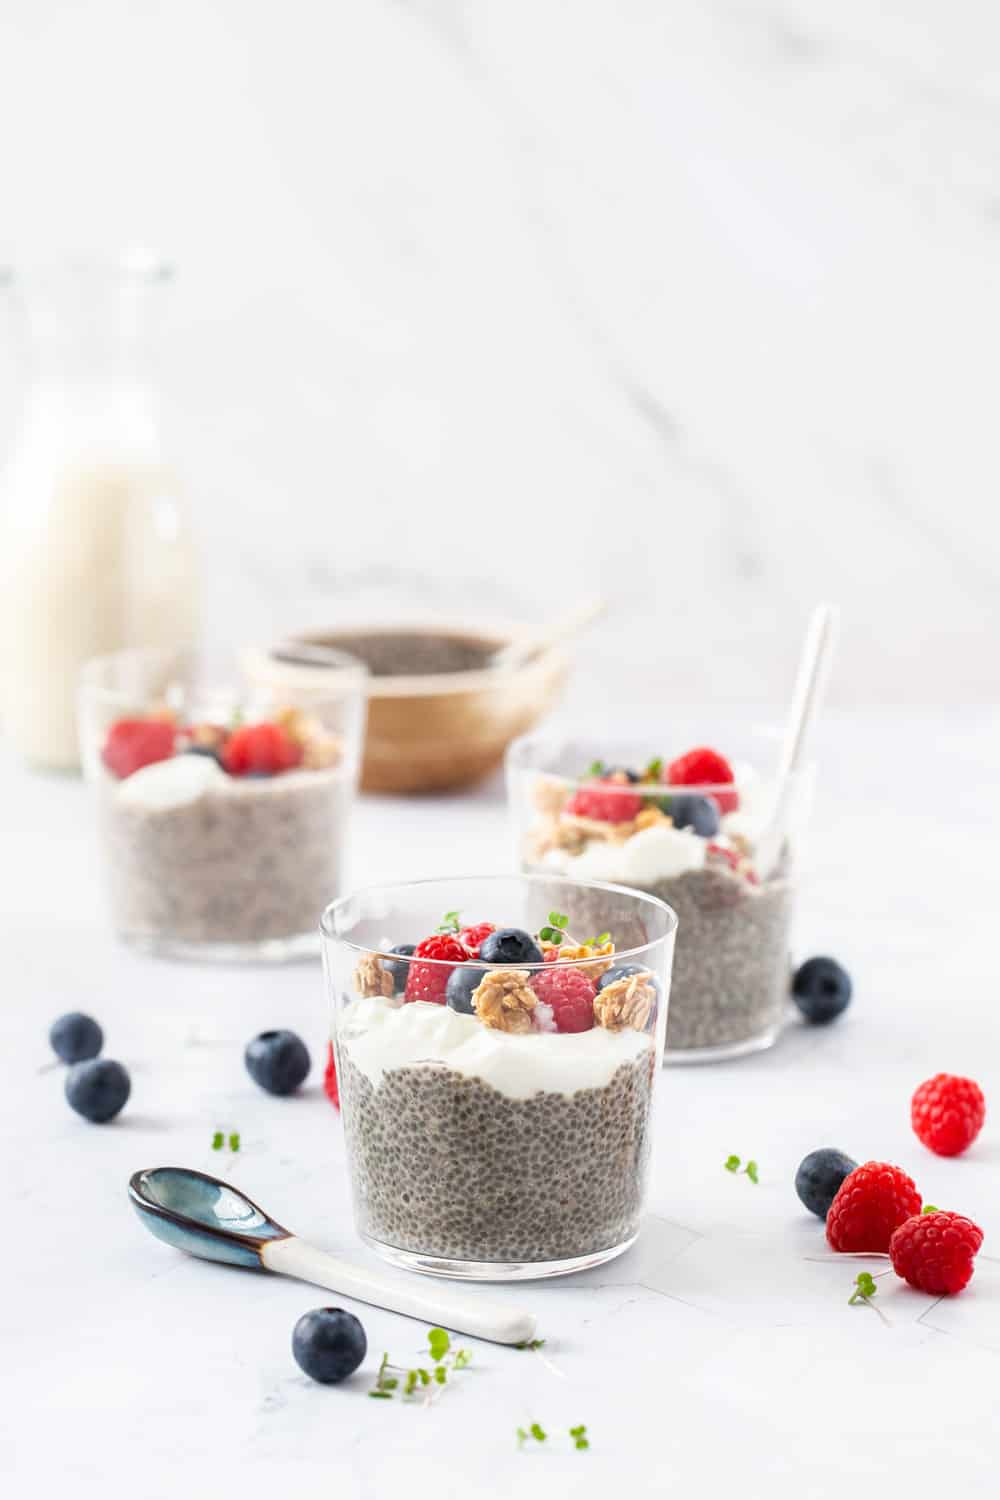 3 chia puddings in glasses topped with berries and granola.